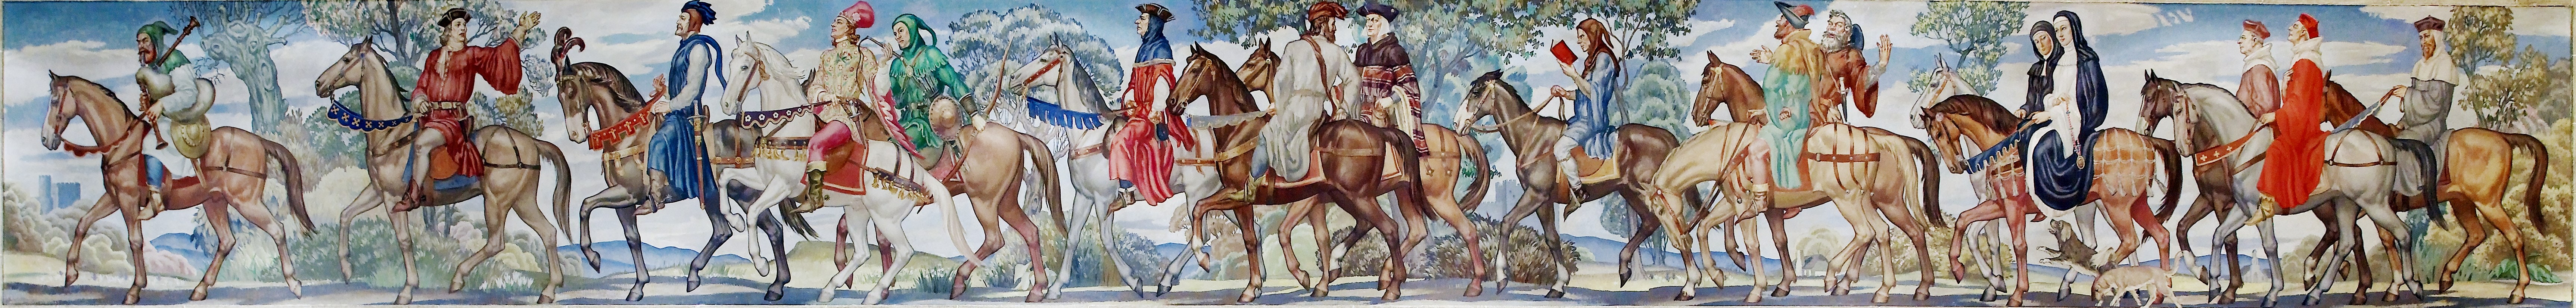 chaucers the canterbury tales essay Ap literature style essay prompts for chaucer's the canterbury tales by crhude in types  school work  essays & theses, chaucer, and canterbury tales.